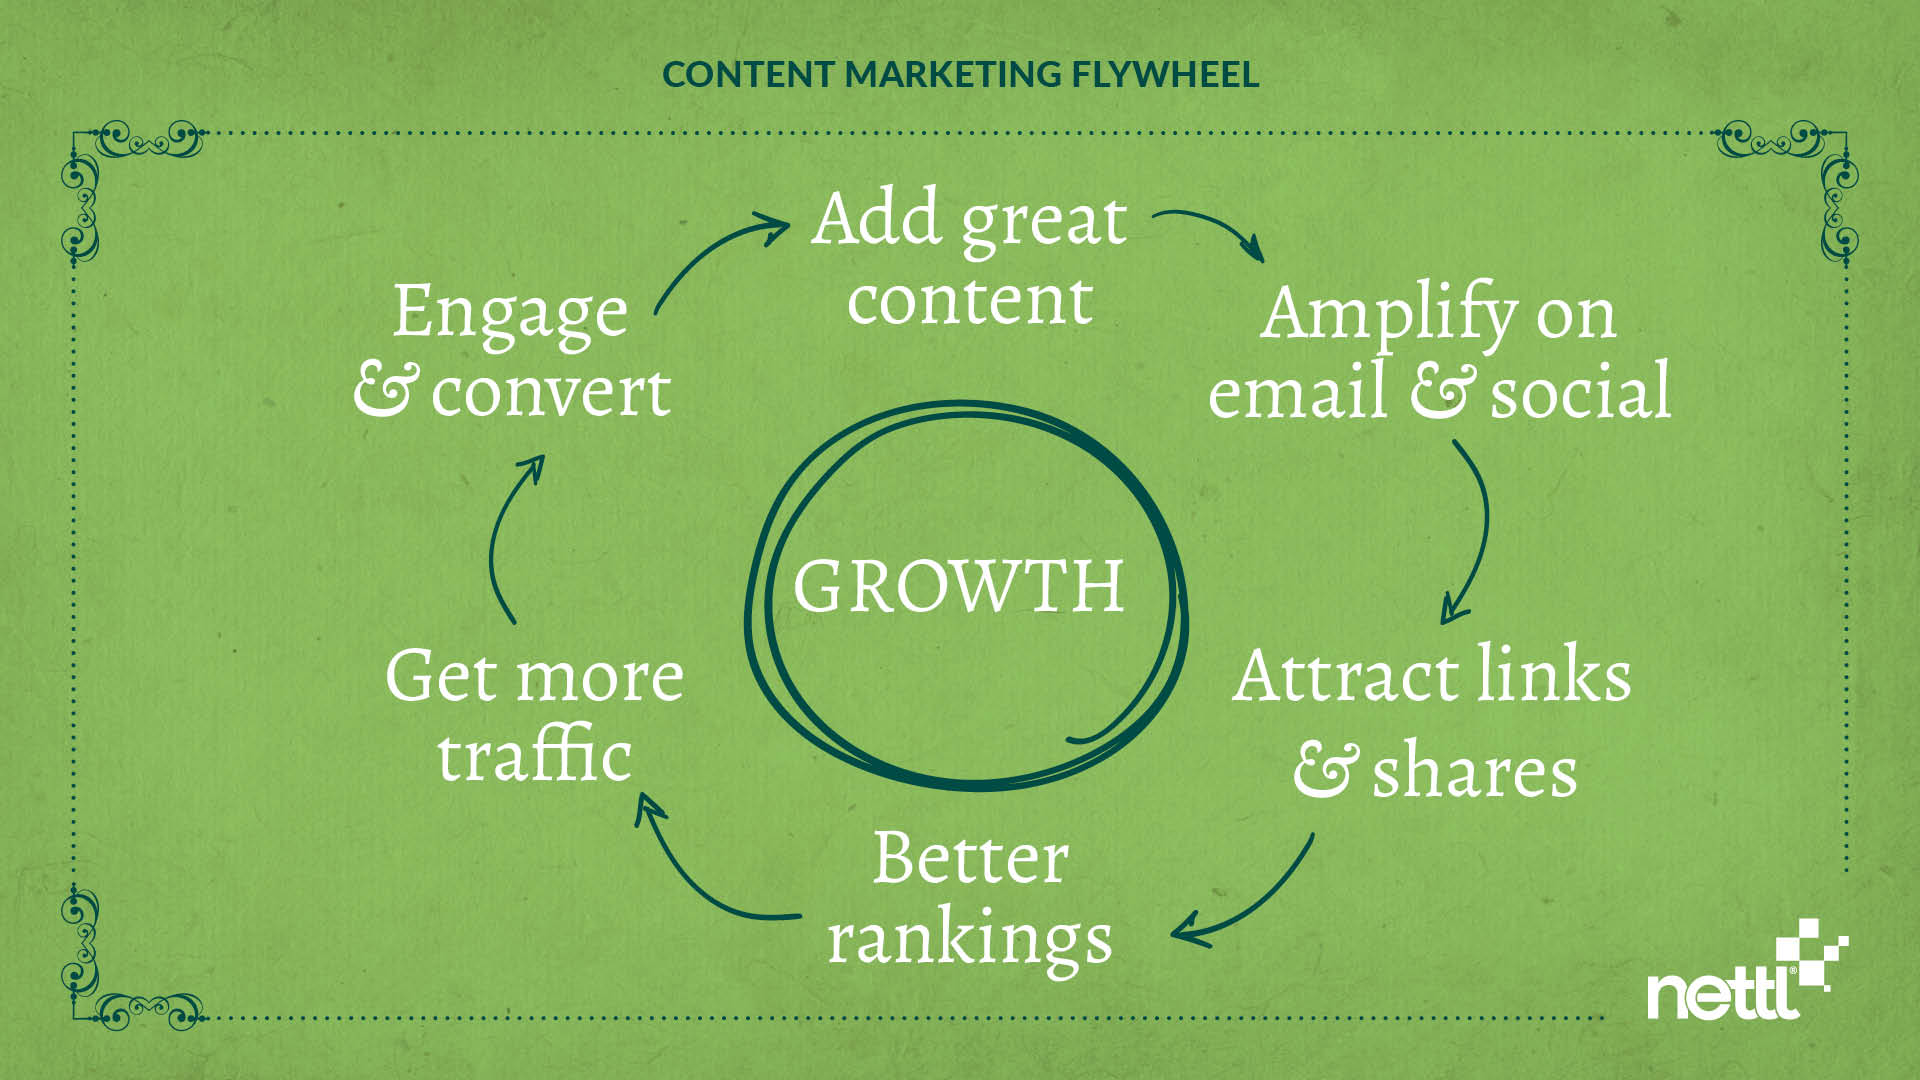 nettl content marketing flywheel